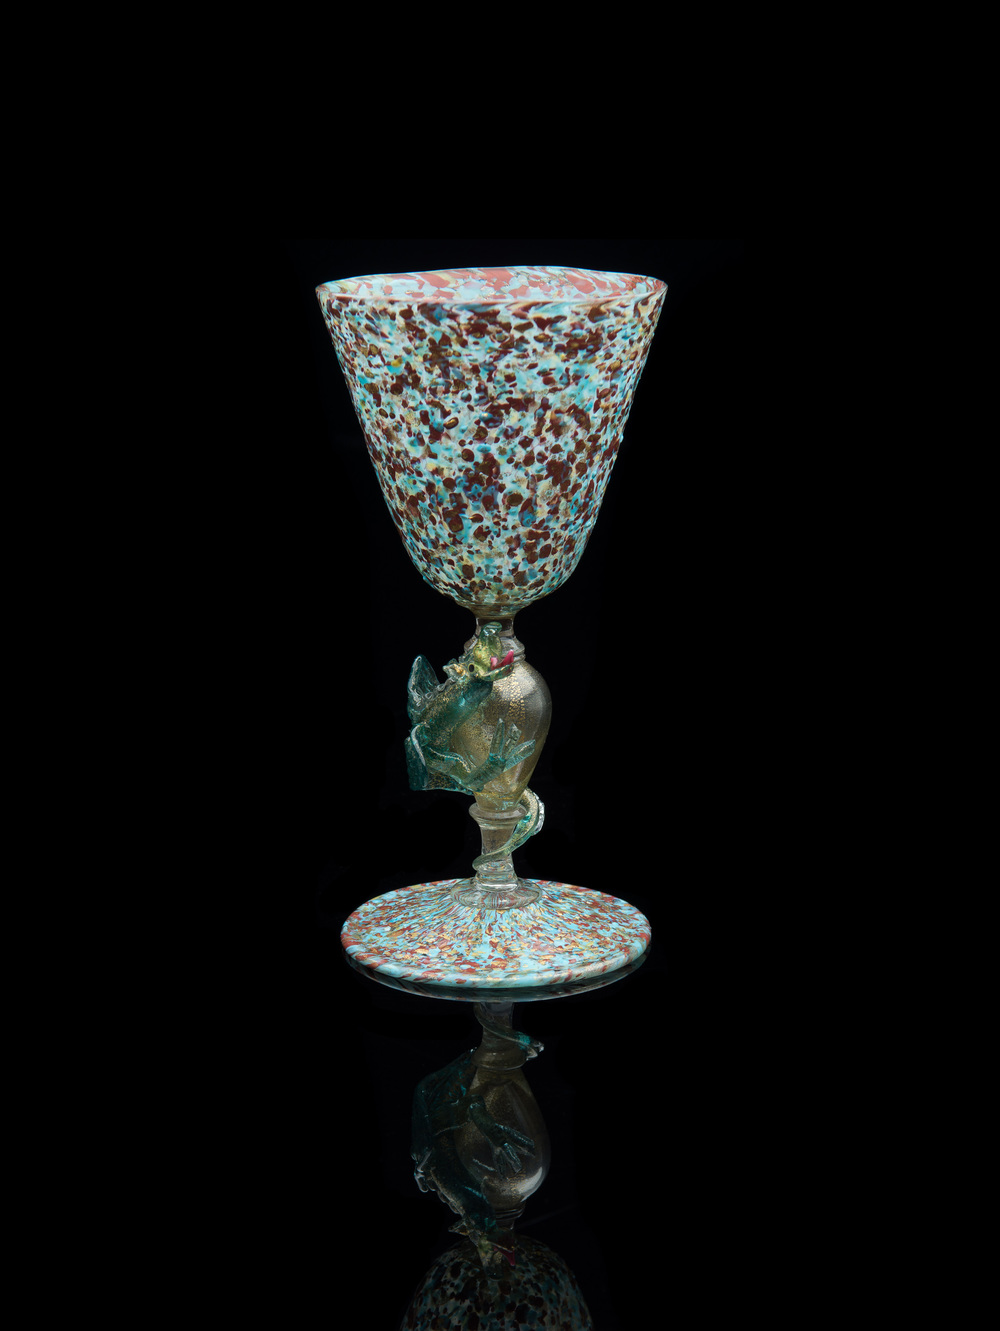 Salviati and Company,  Descreziato Dragon Stem Goblet  (glass), VV.401